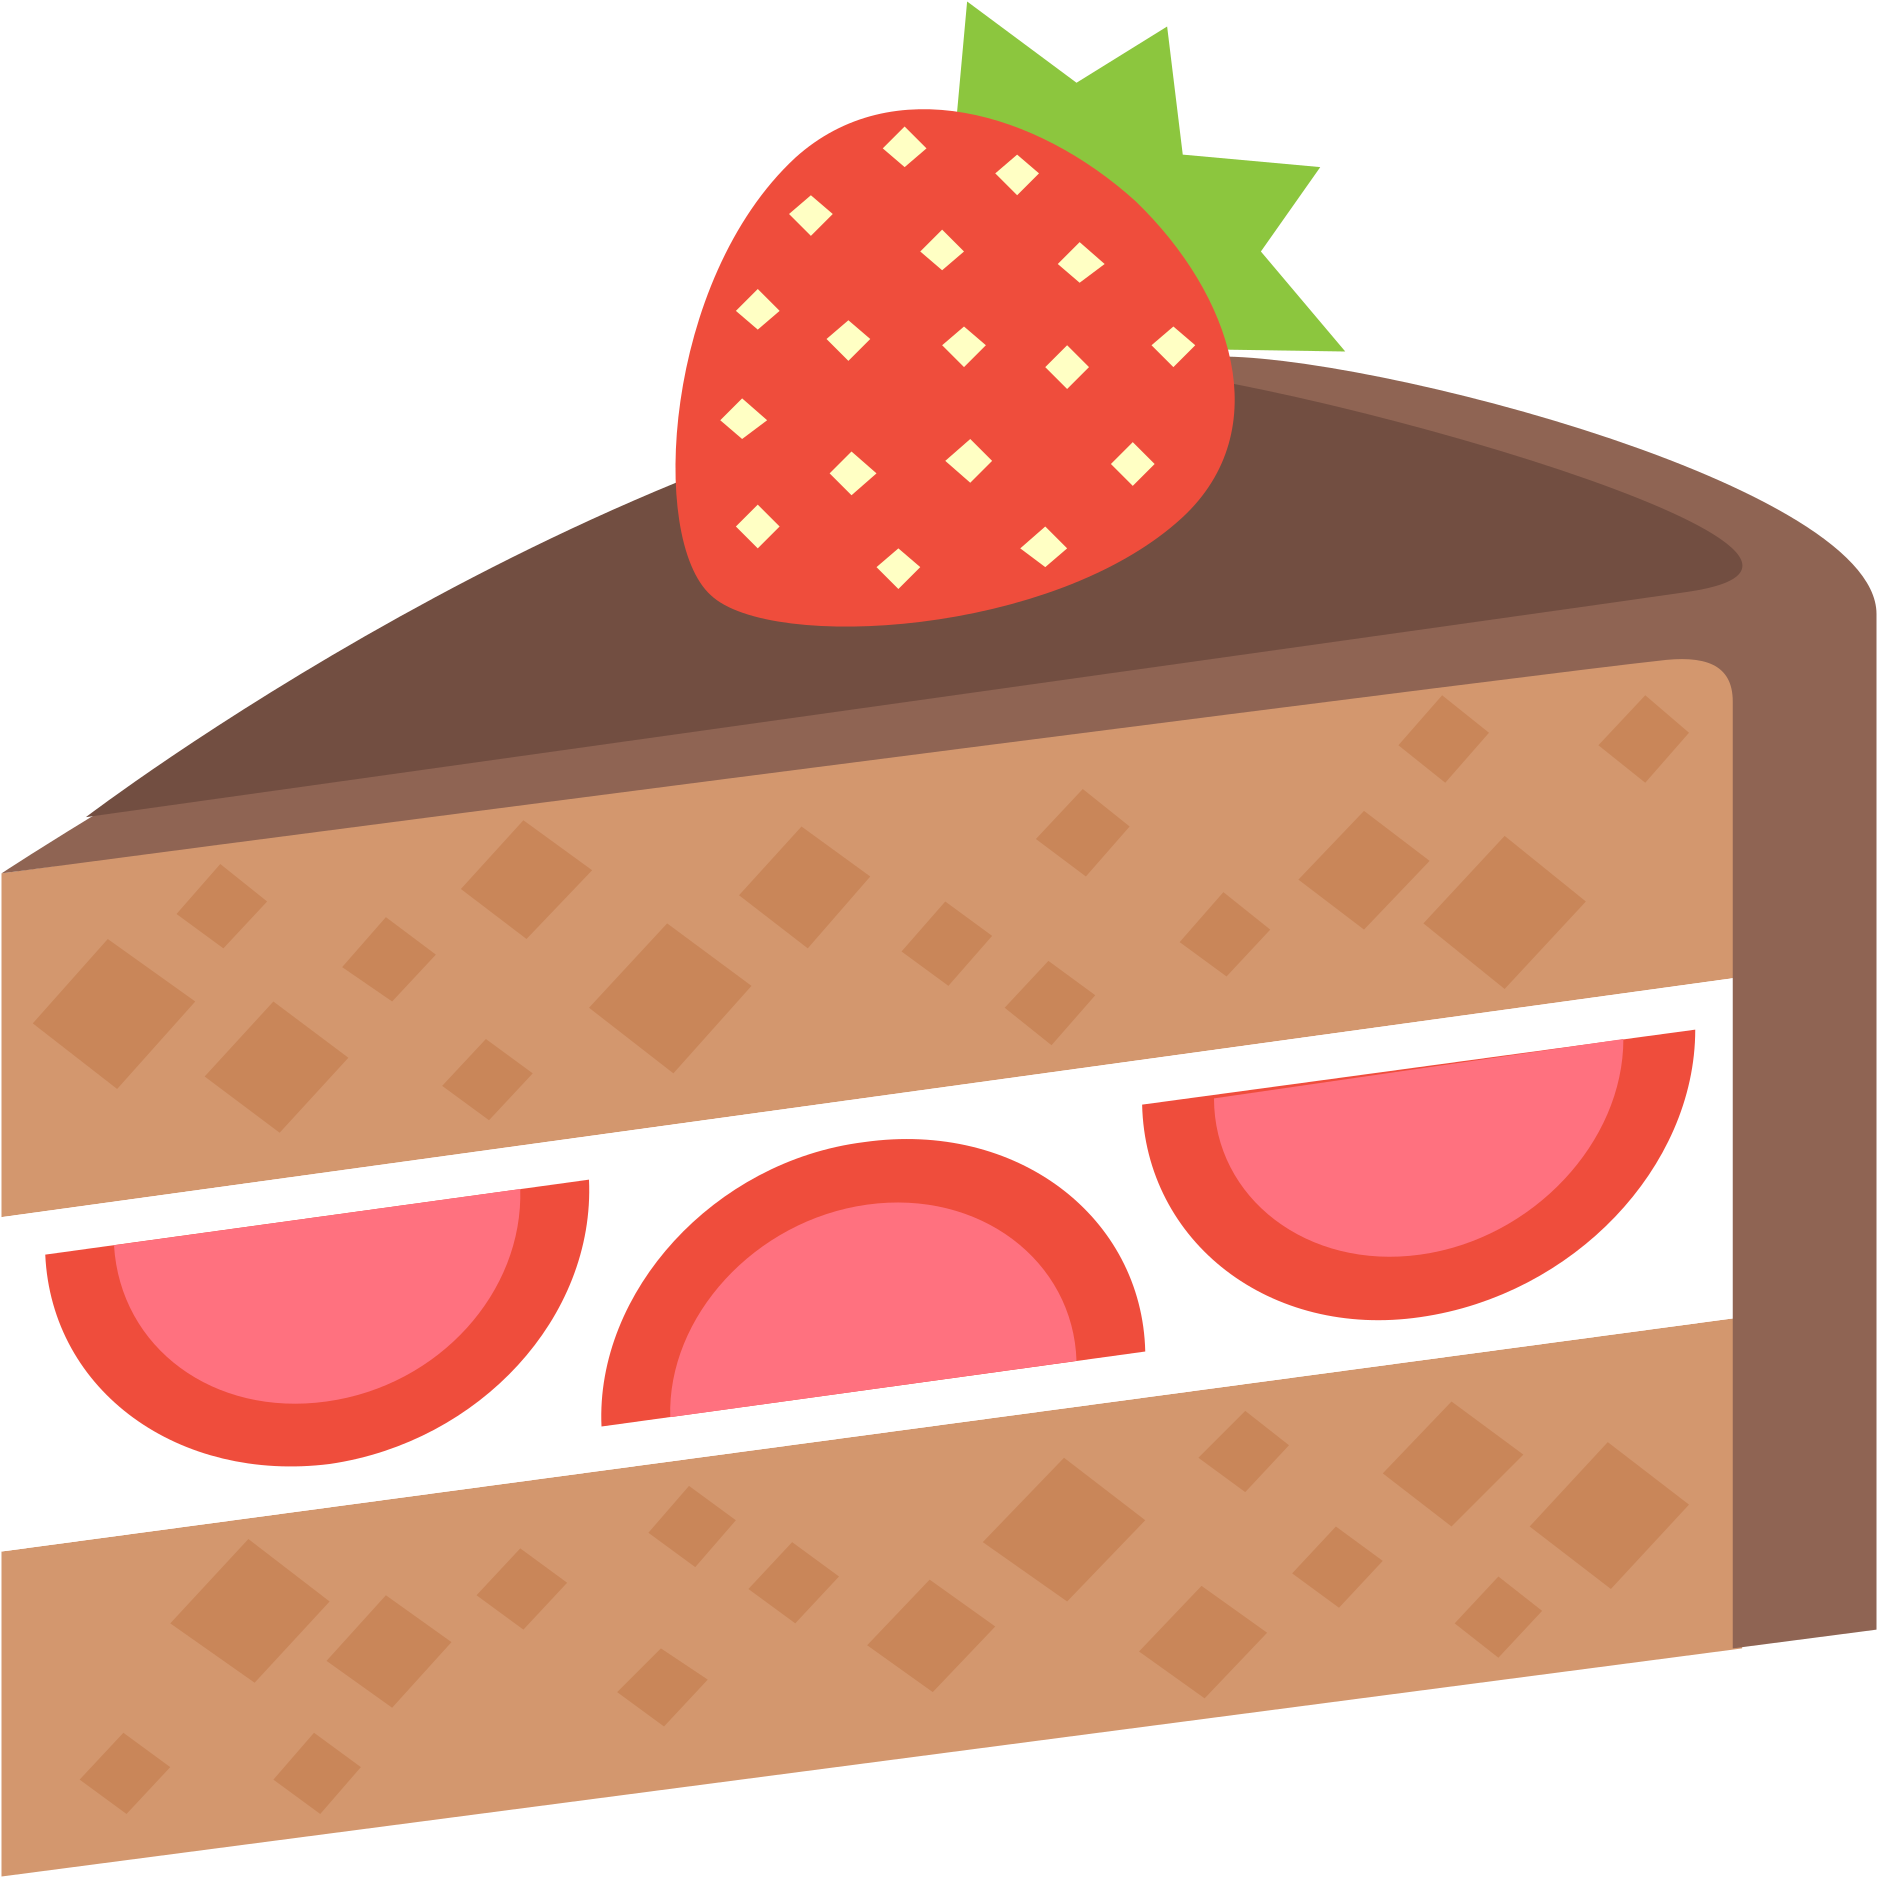 Emoji Clipart Strawberry Emoji De Bolo Png Transparent Cartoon Jing Fm Download strawberry emoji stickers and enjoy it on your iphone, ipad and ipod touch. emoji de bolo png transparent cartoon